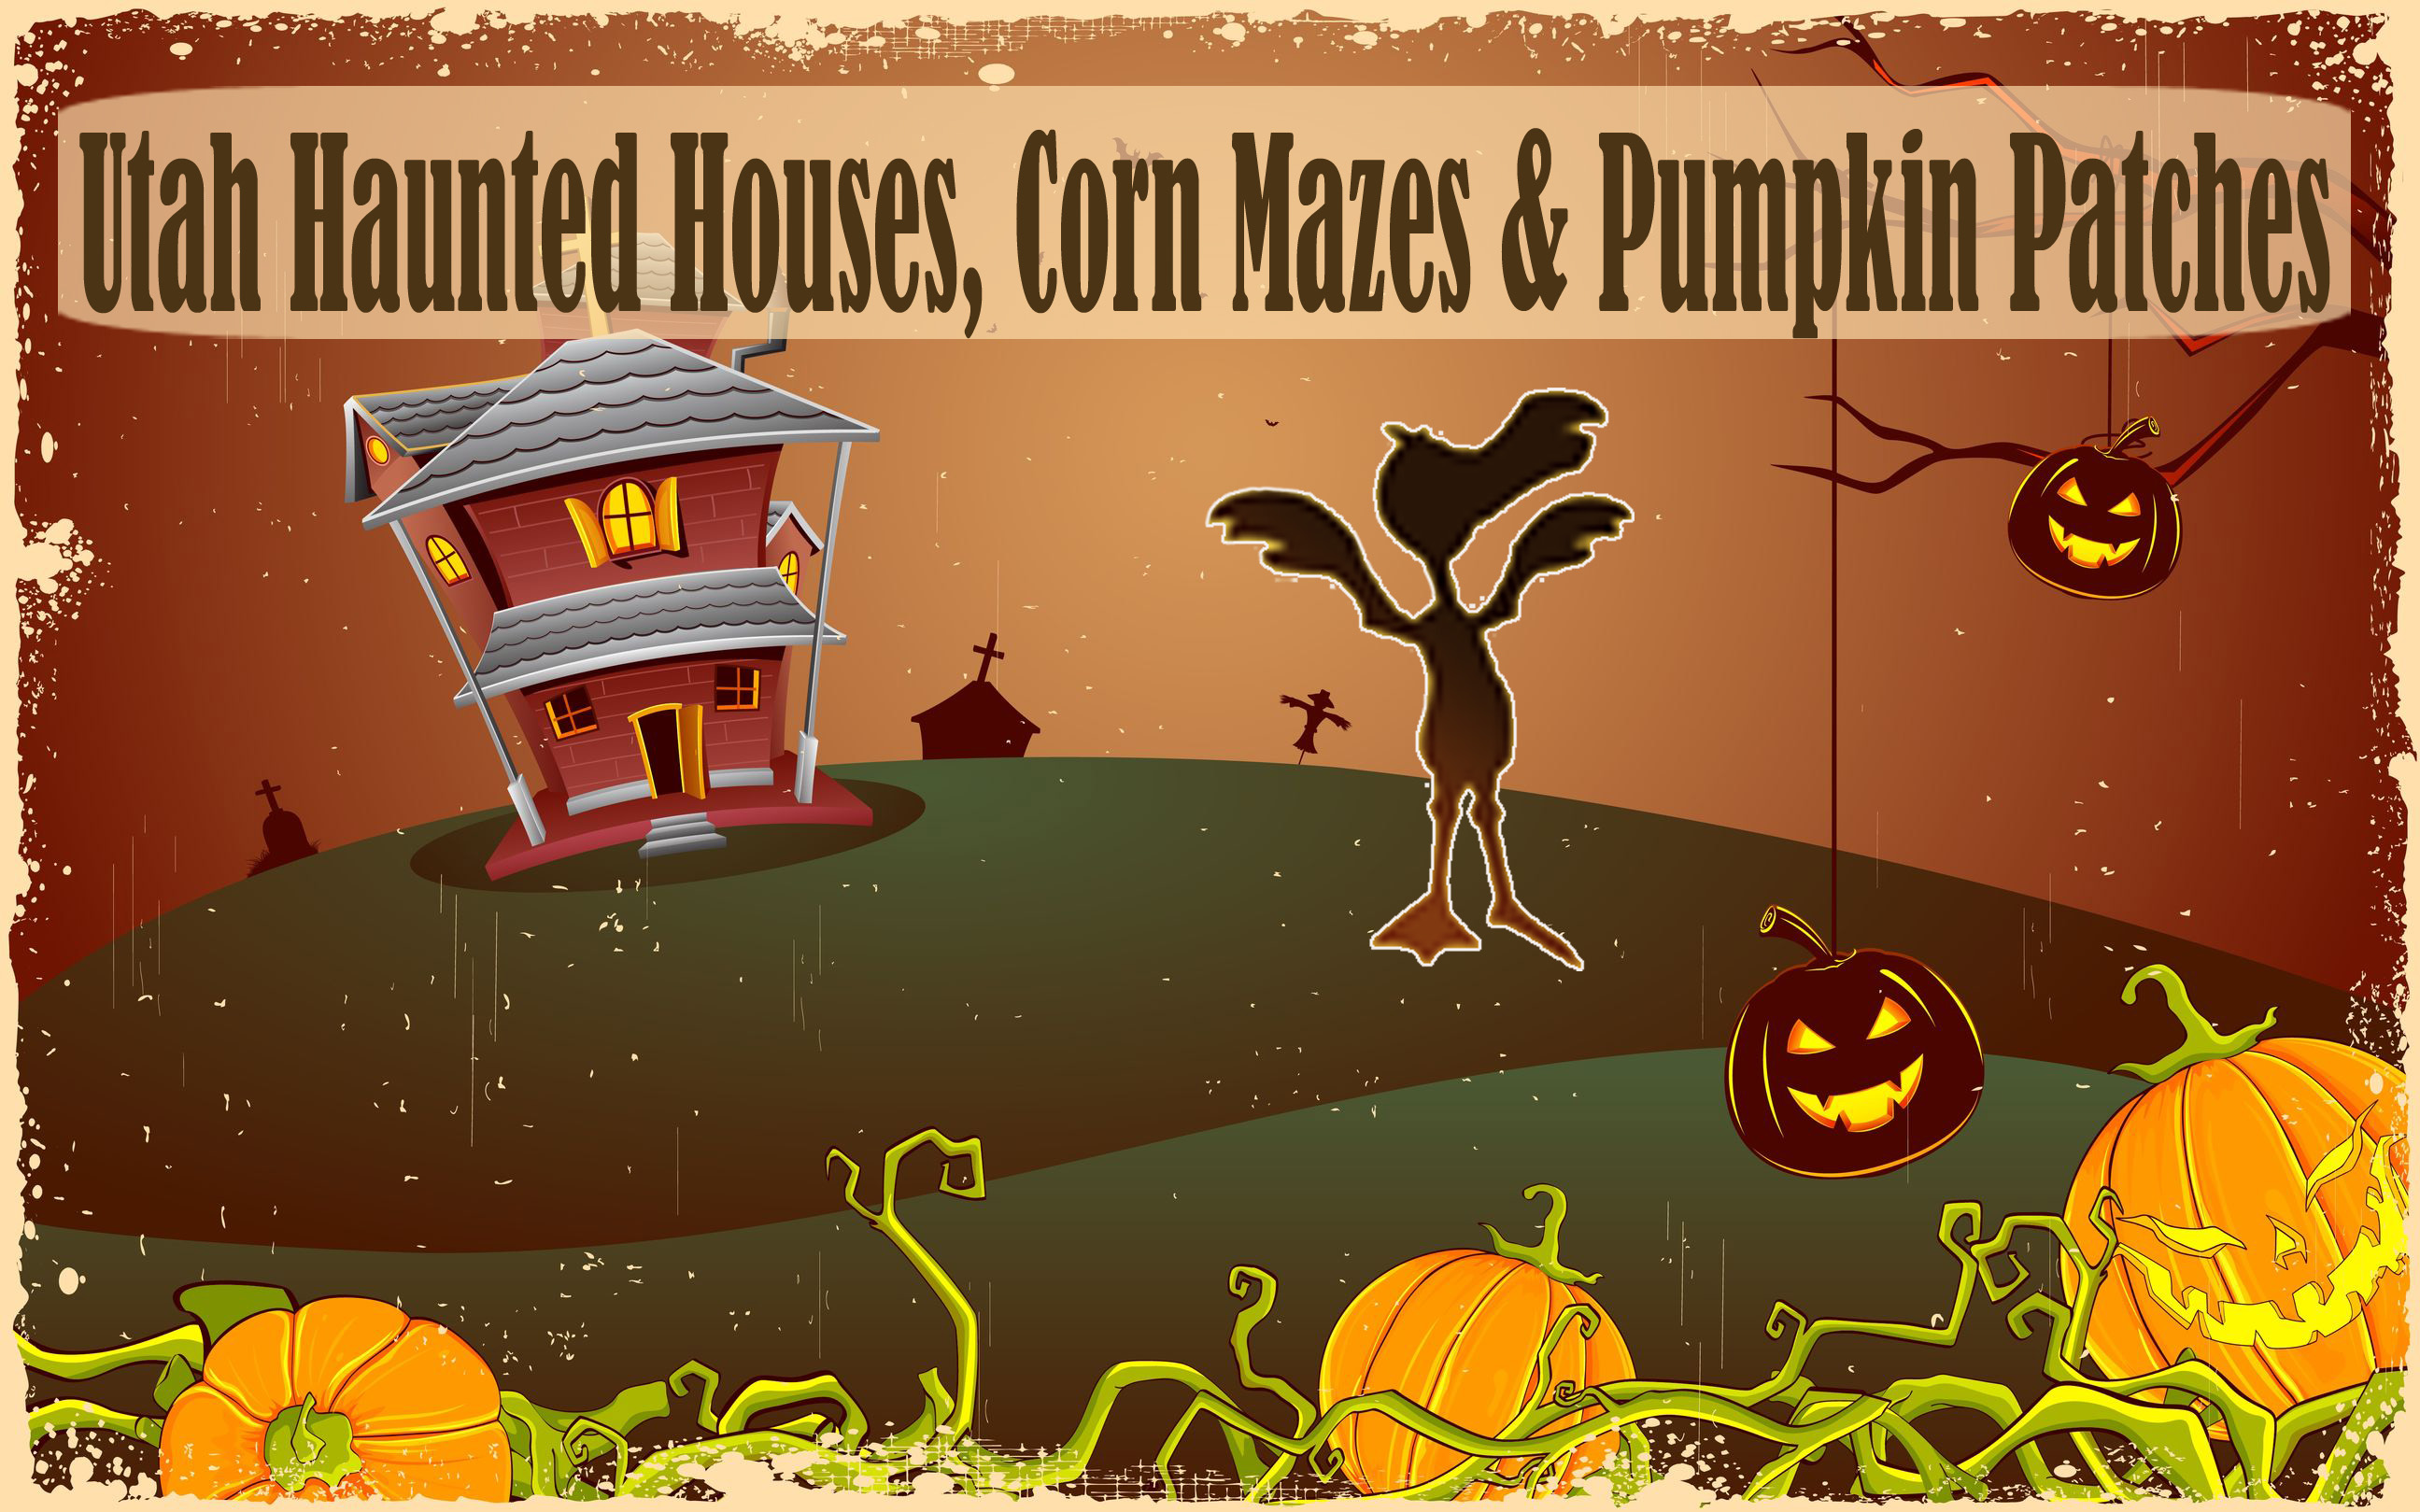 Utah Haunted Houses Corn Mazes Pumpkin Patches And Halloween Events